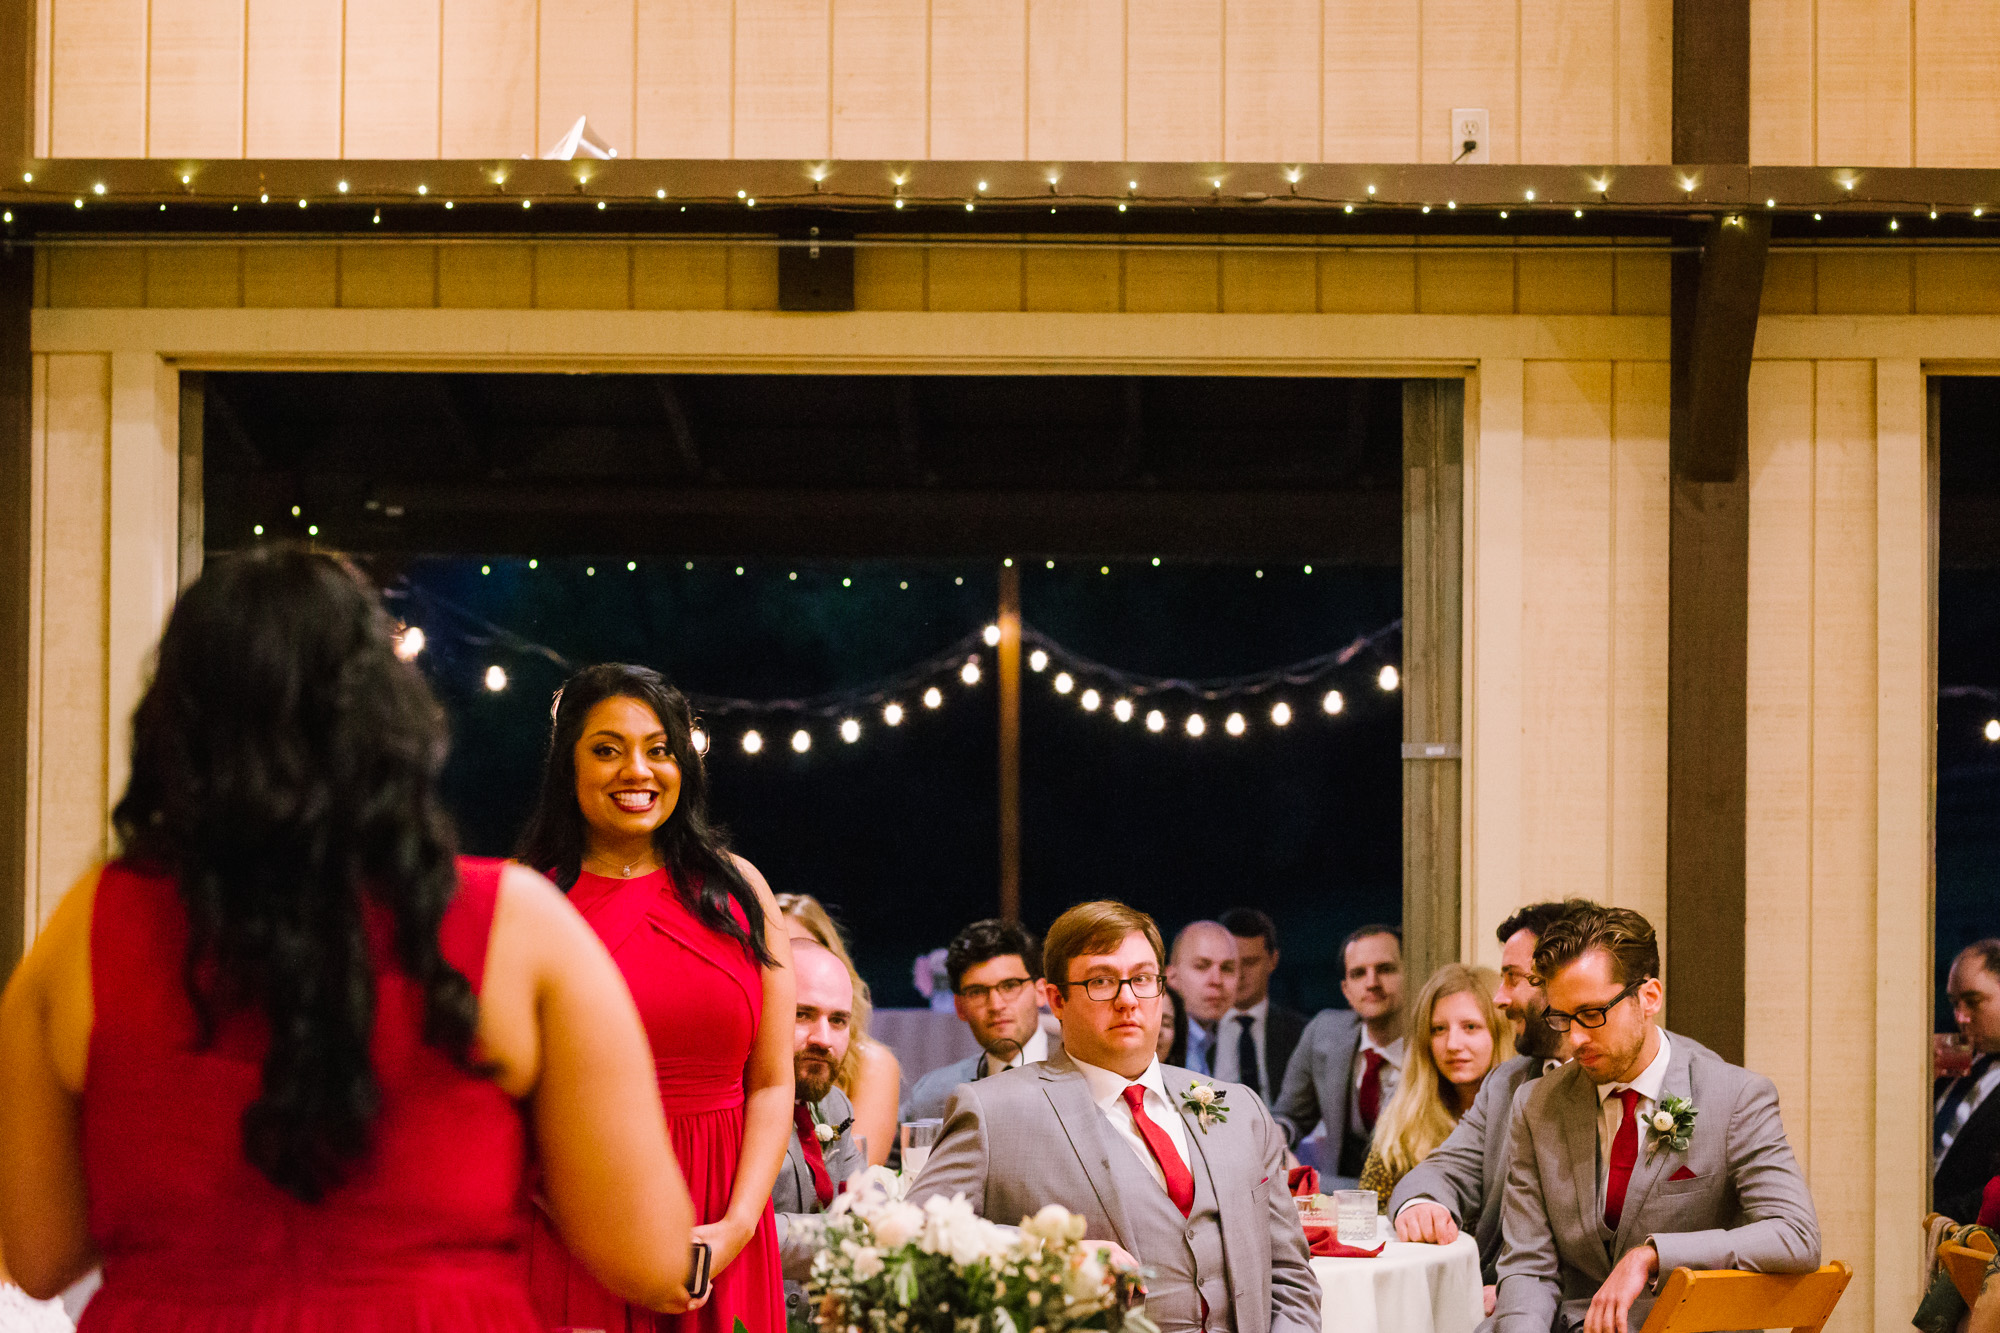 Waynesville NC Wedding Photography | Reception Speeches and Smiling